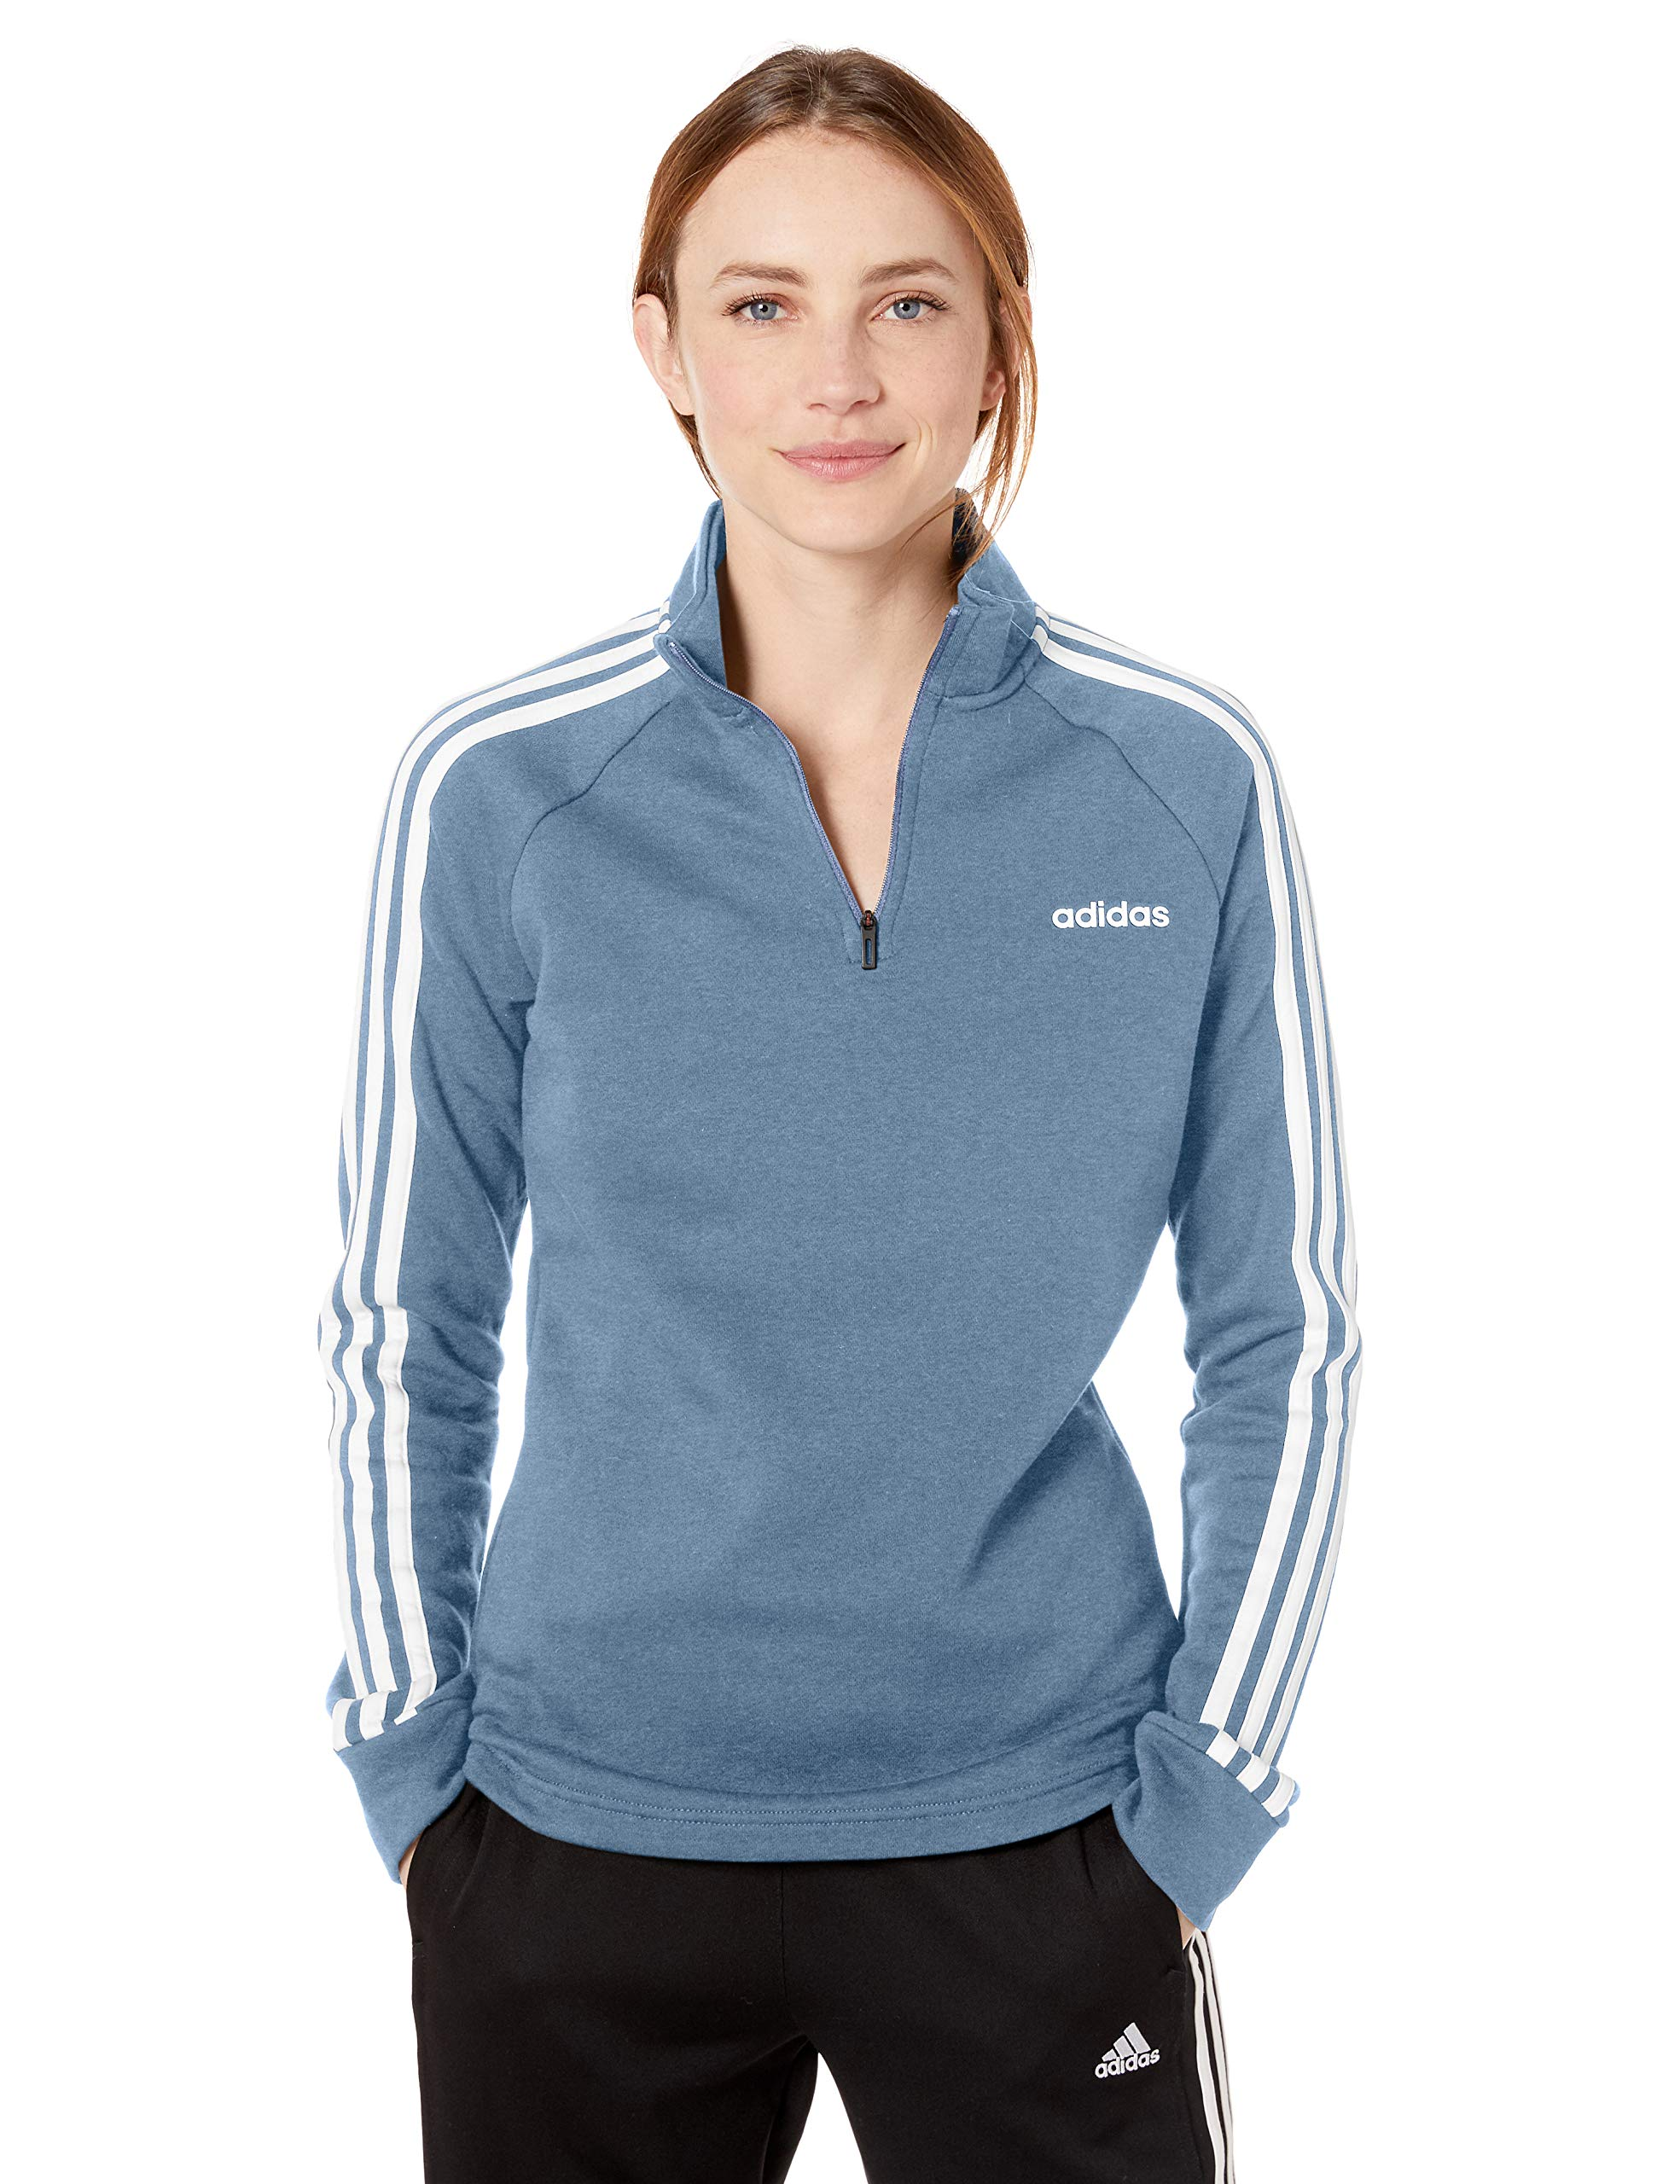 adidas Women's 3-Stripes Track Jacket by adidas